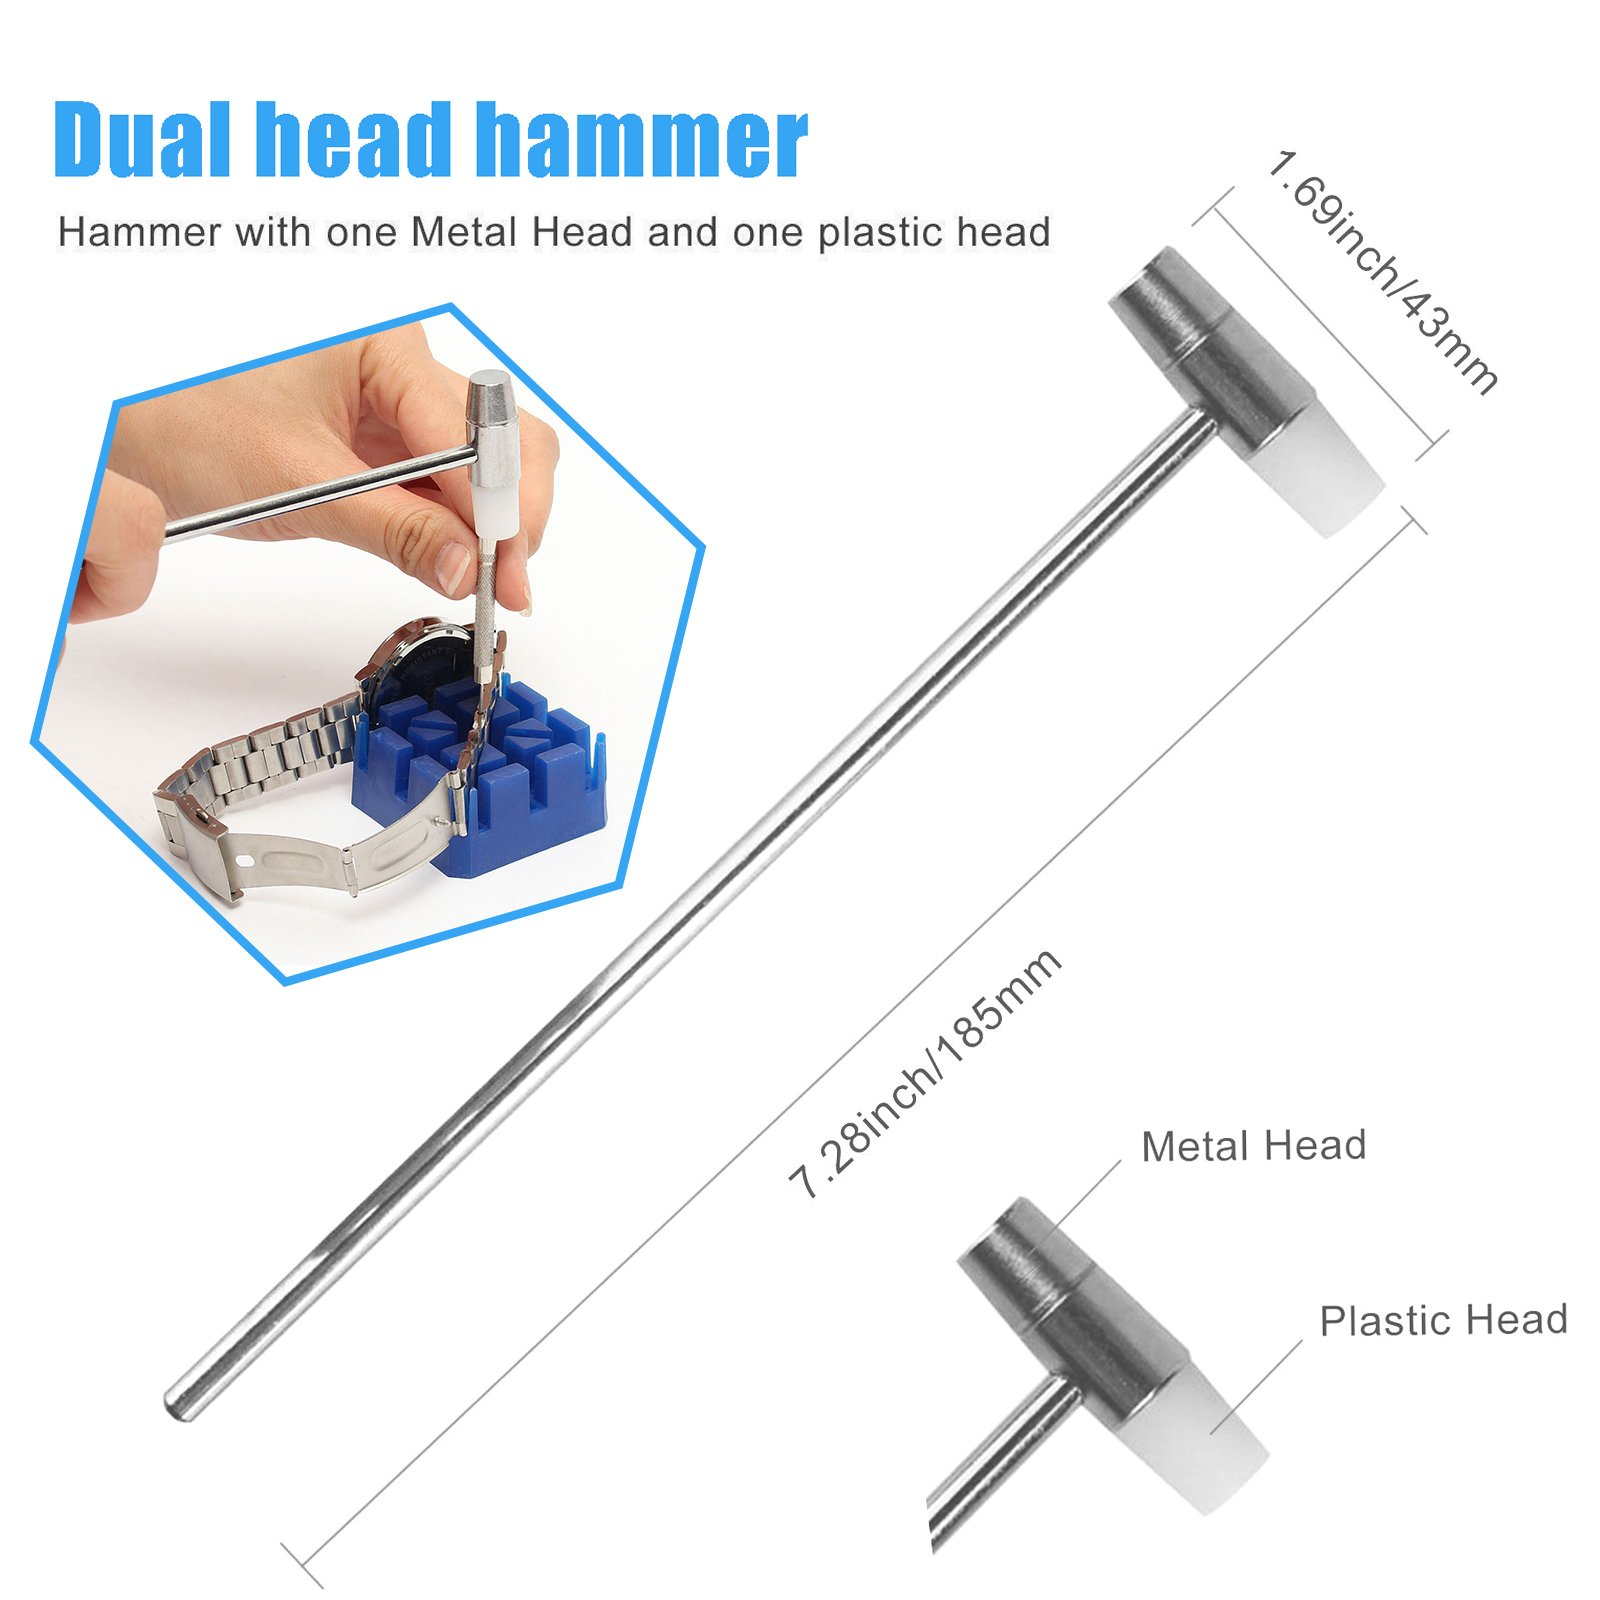 Watch Repair Kit, Spring Bar Tool Kit with Watch Strap Link Pin Remover/Watch Band Holder/Dual Head Hammer/Watch Pins(18 20 22 24 mm)/Pin Punches, Watch Repair Strap Removal Kit ideal for Watchmaker